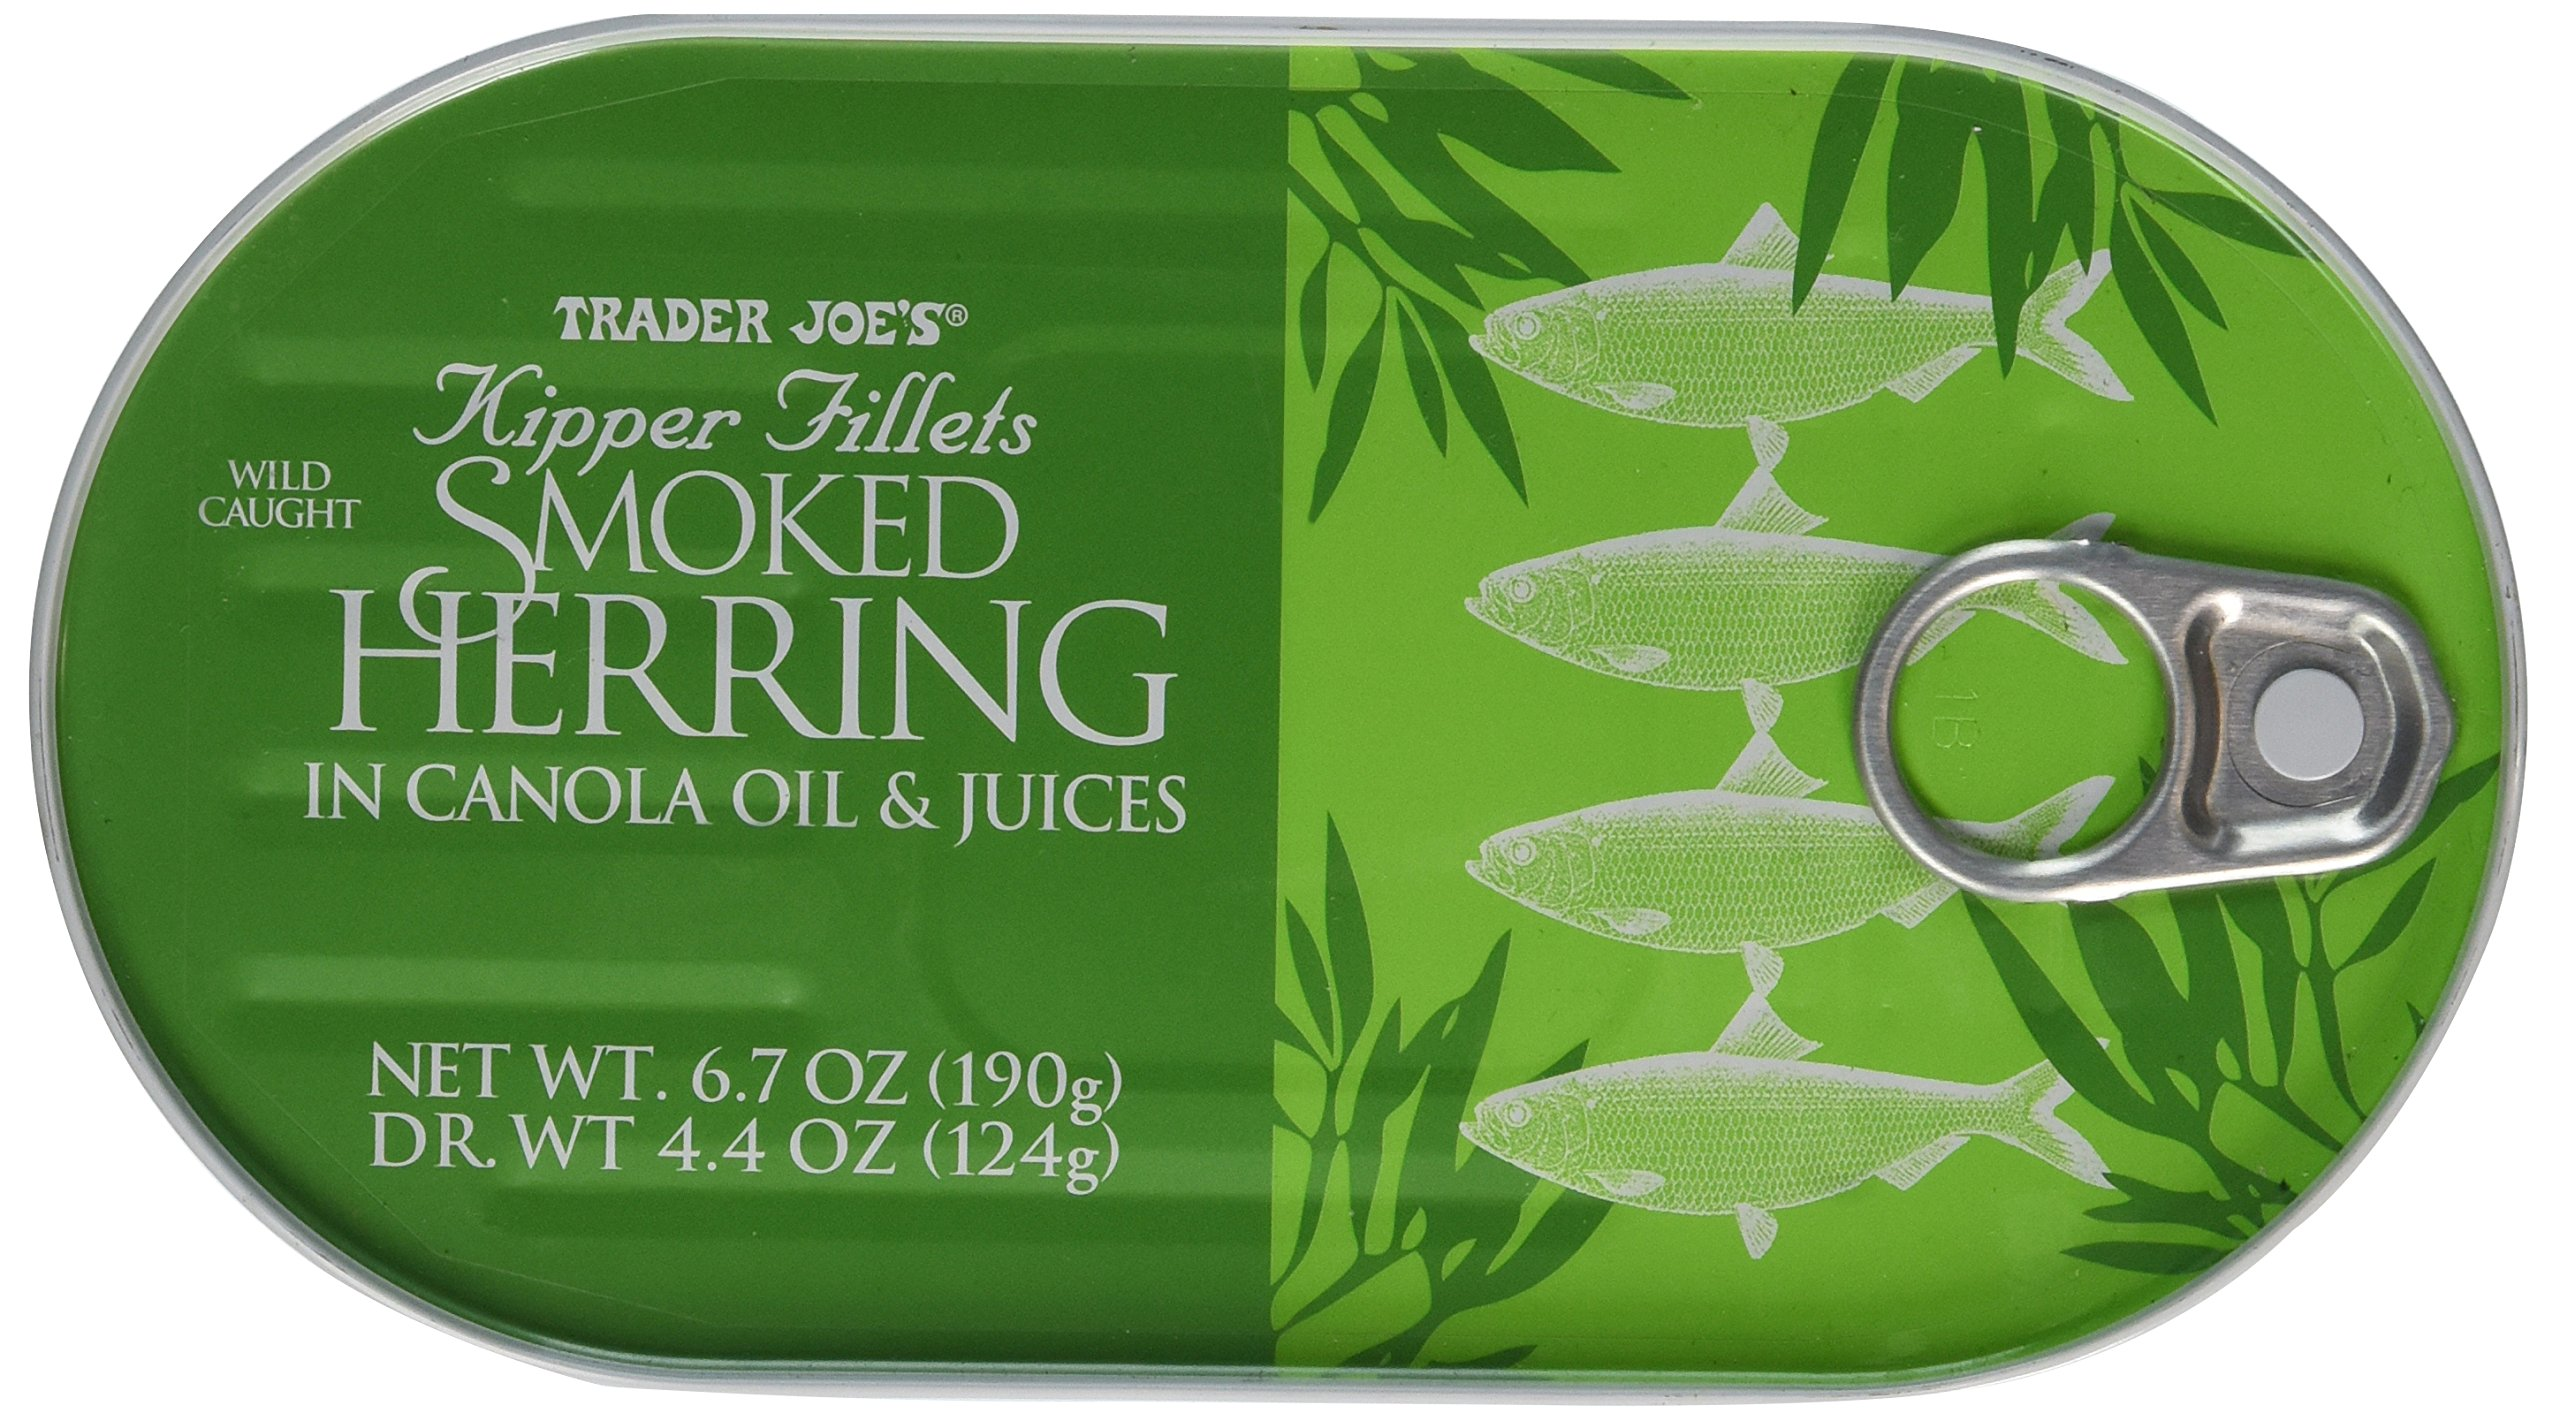 Trader Joe's Kipper Fillets Smoked Herring in Canola Oil and Juices